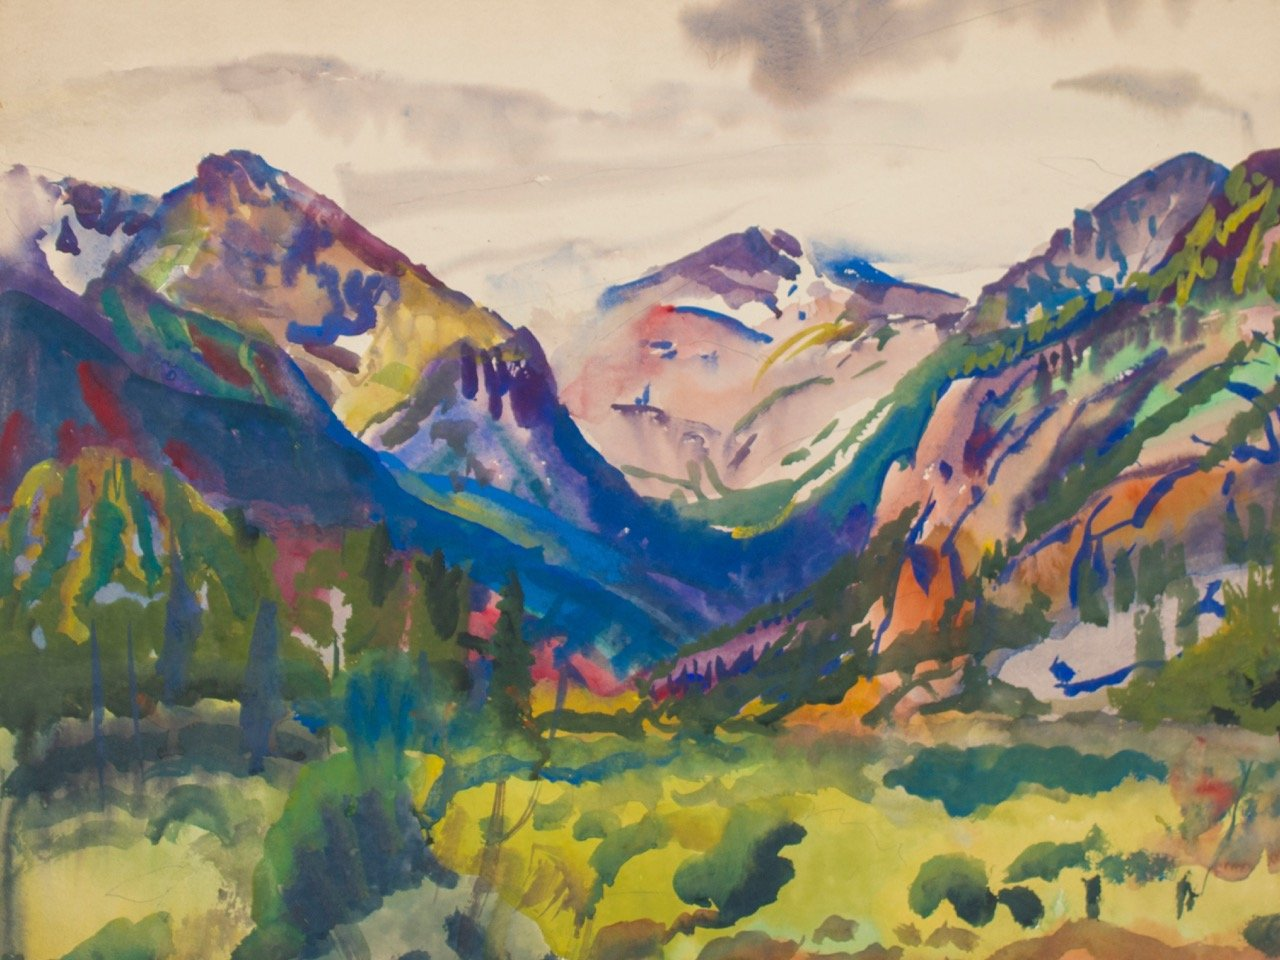 Shower at Head of Valley by Frank Nelson Wilcox